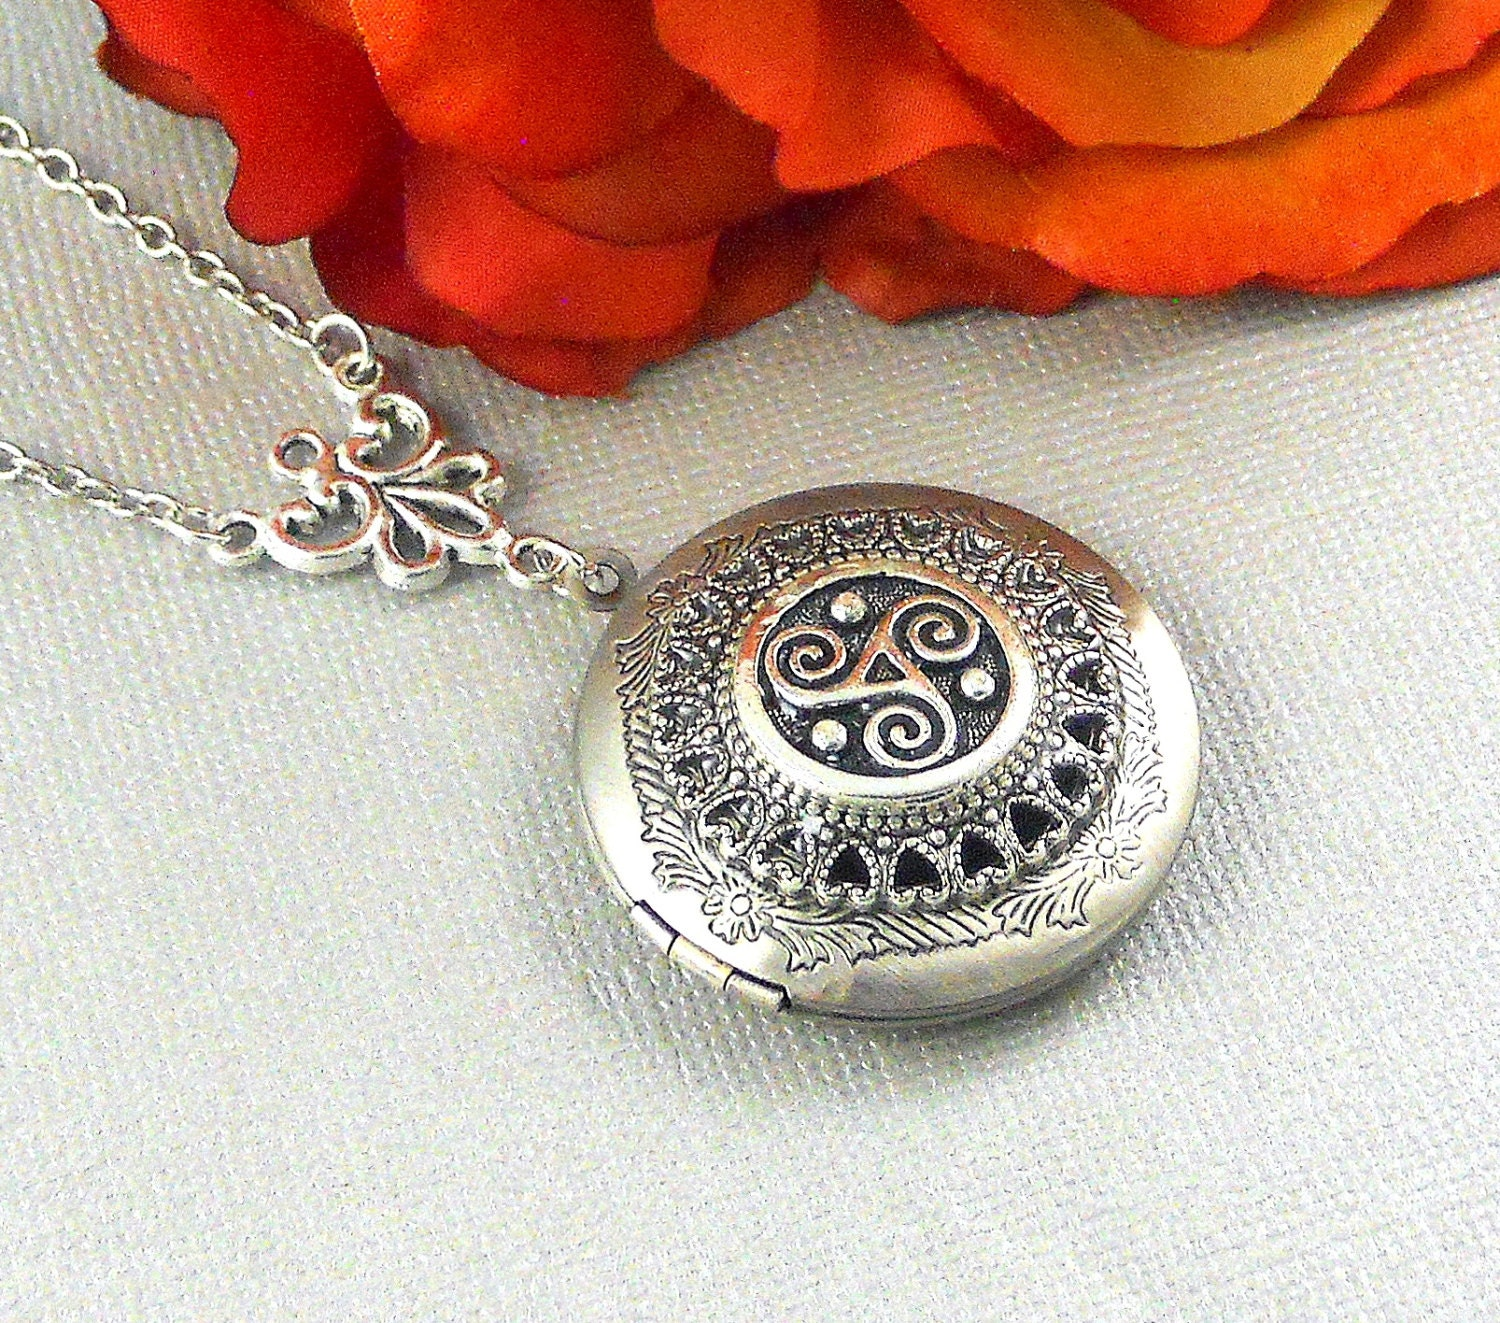 the locket bridesmaids wedding necklace birdznbeez jewelry original birthday lockets celtic by pin silver gift knot